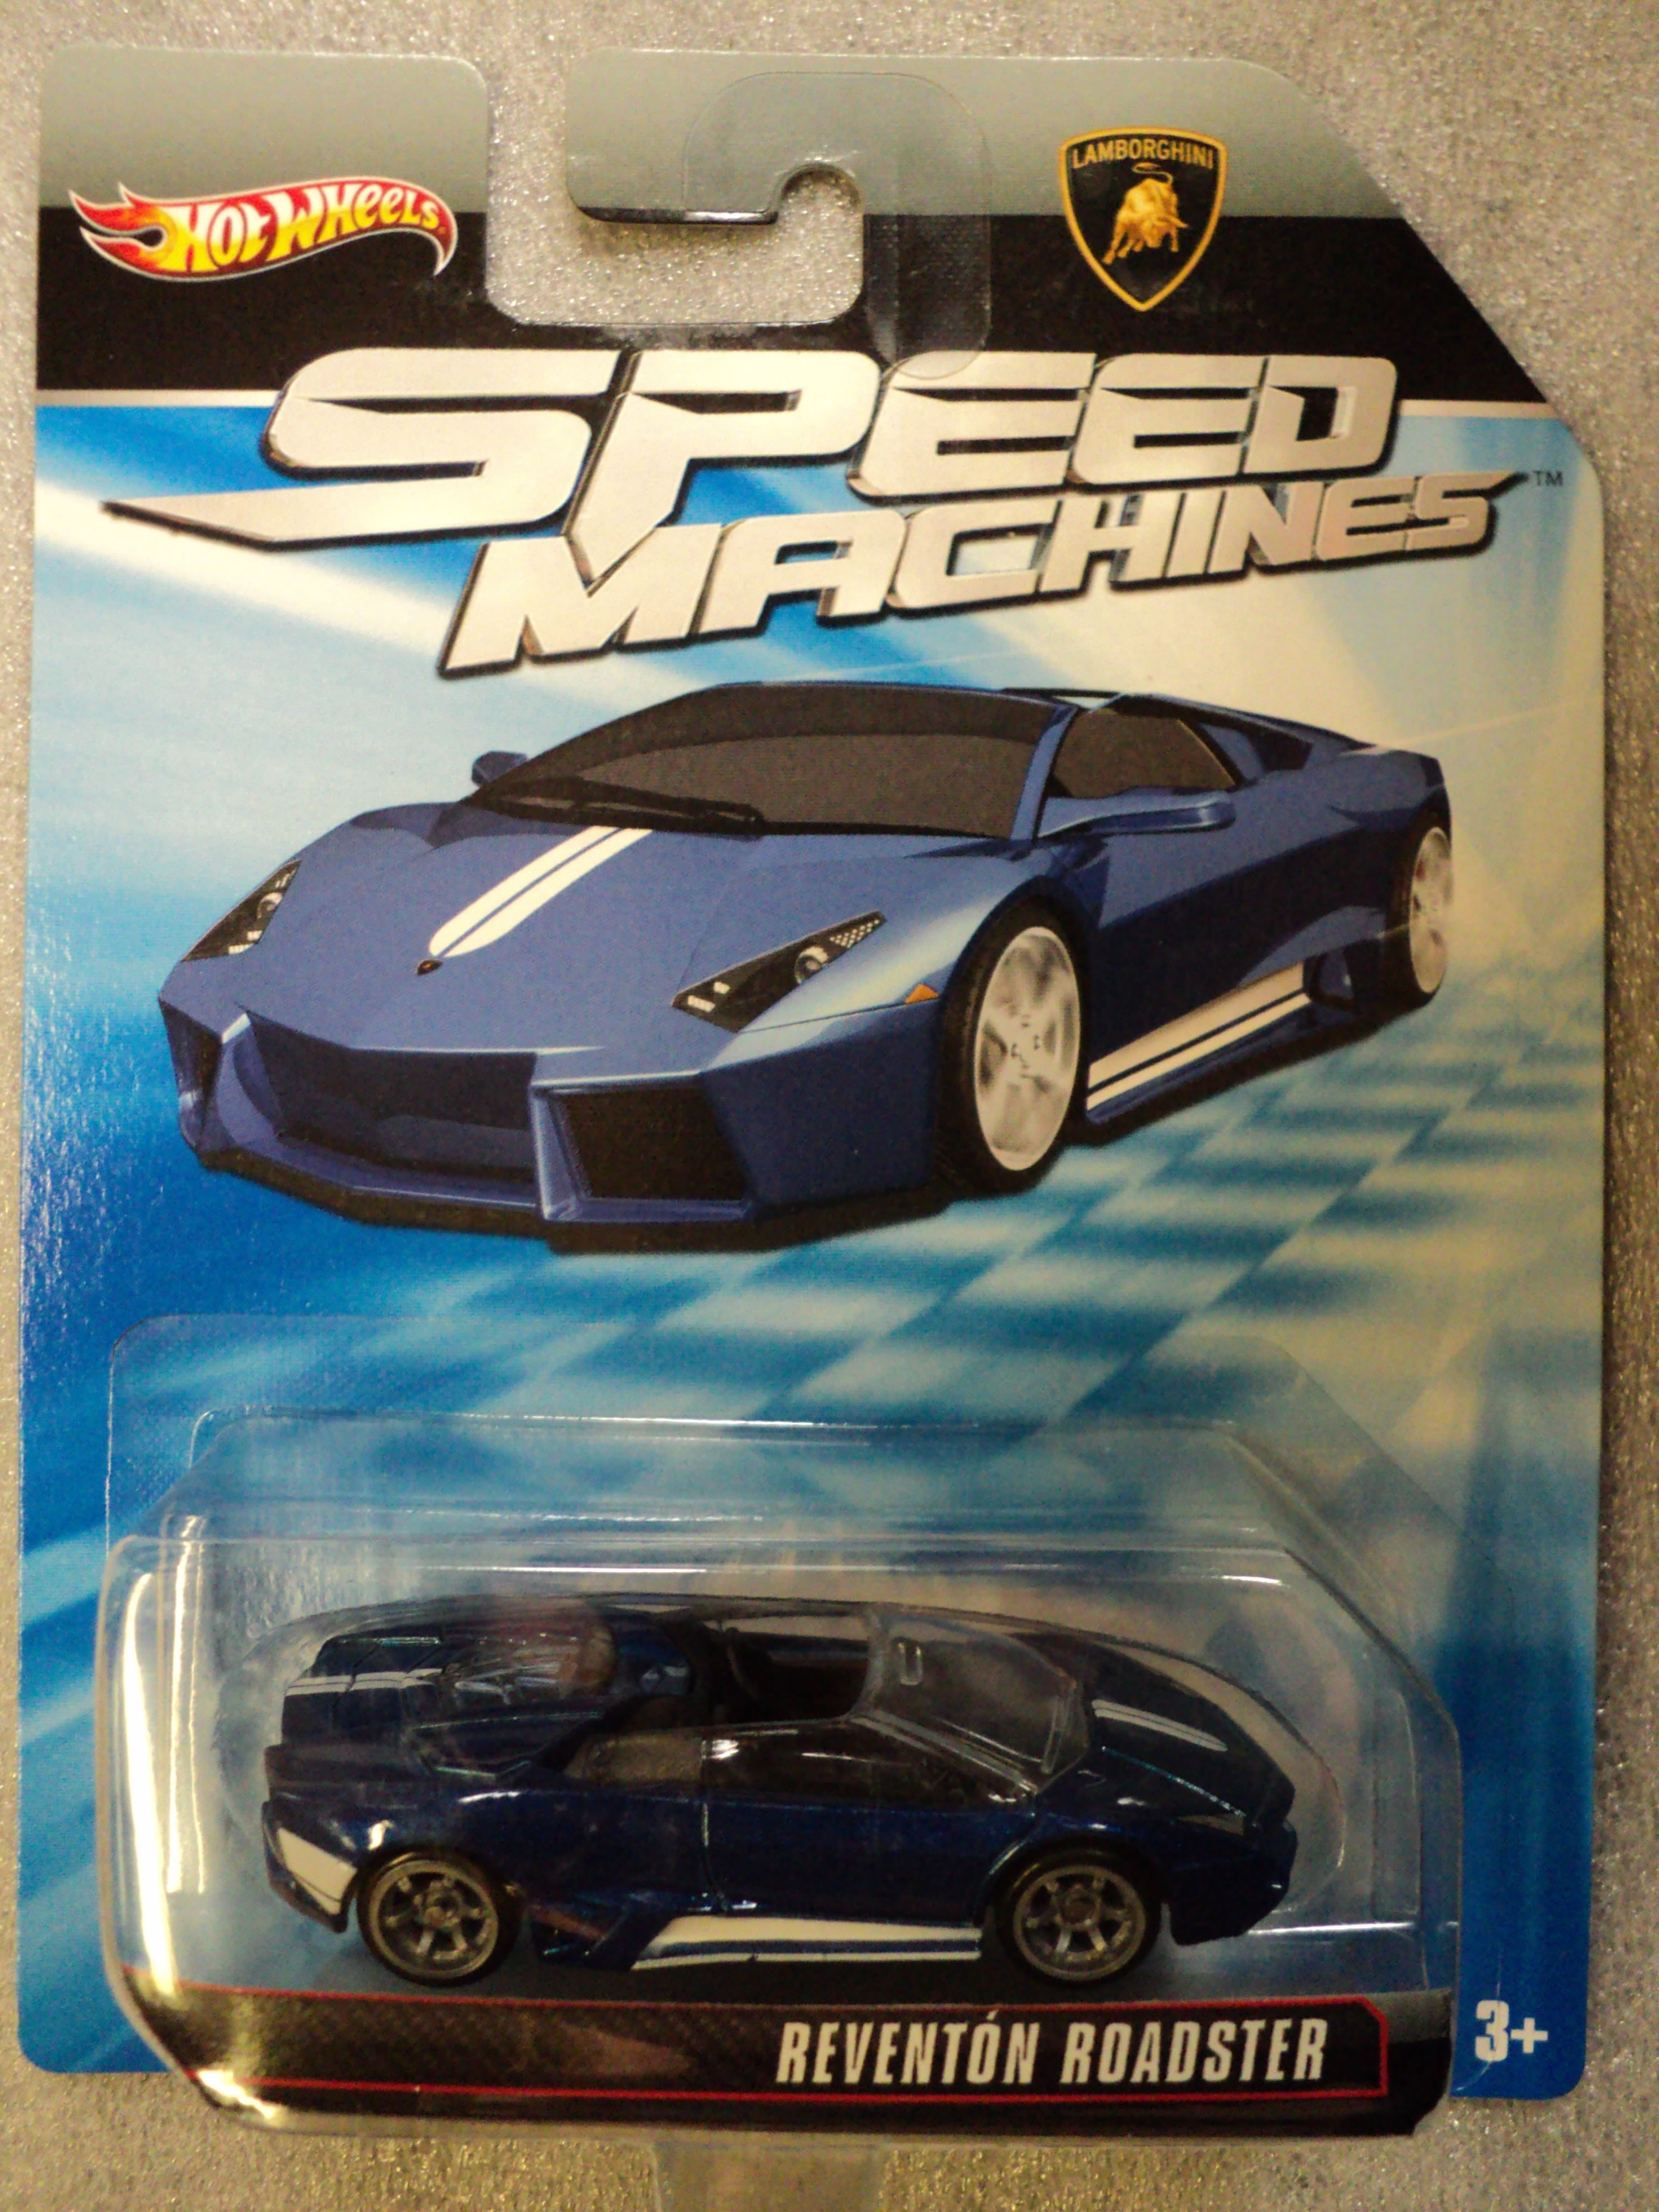 Hot Wheels 2010 Speed Machines Lamborghini Reventon Roadster